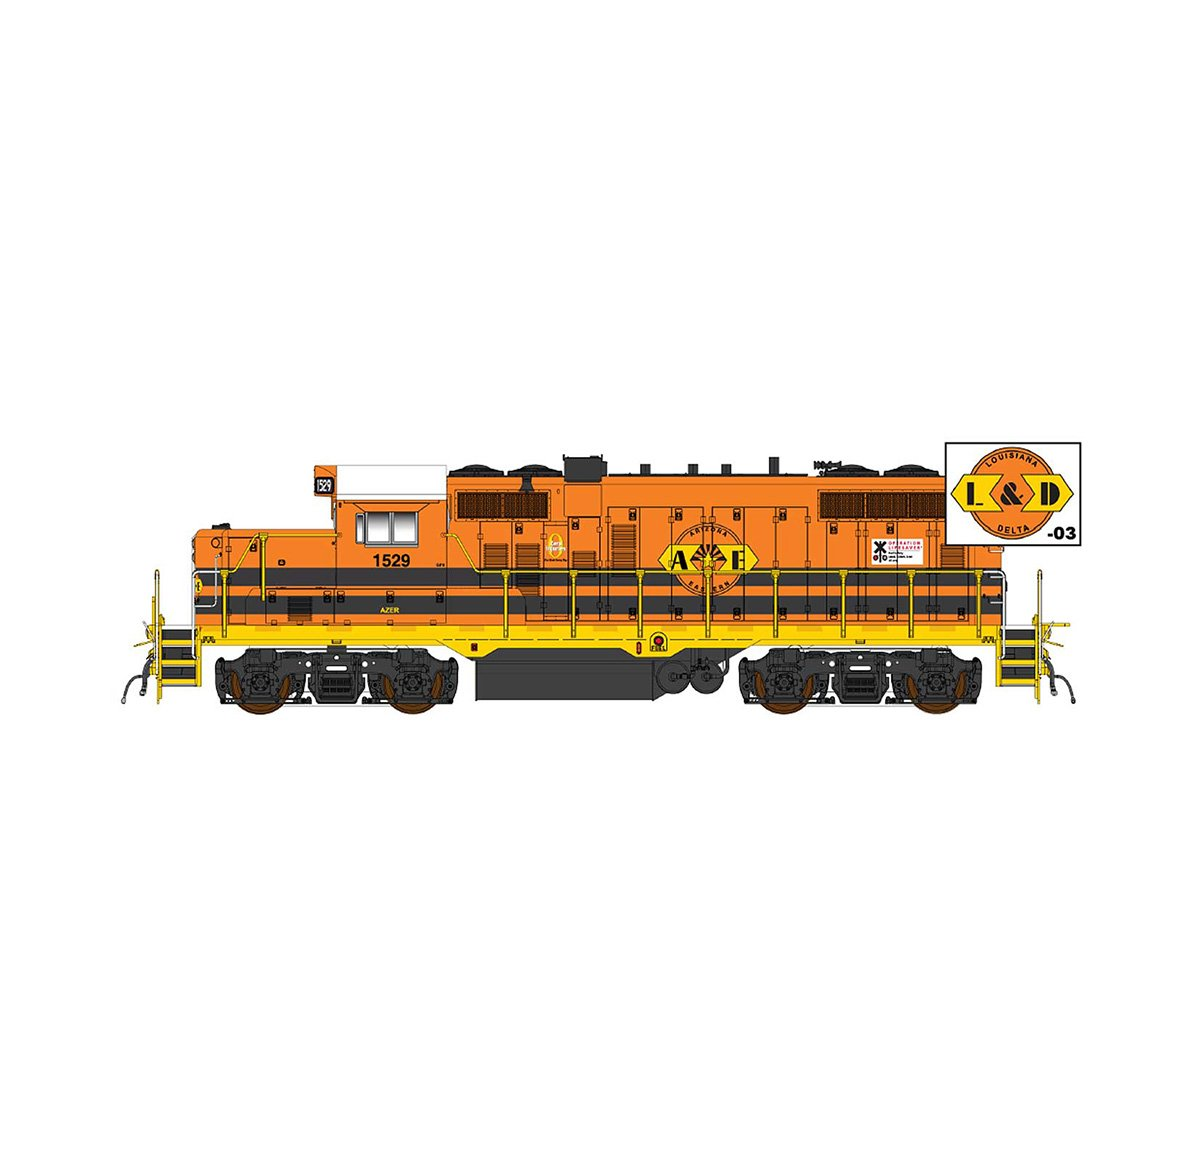 InterMountain 49871S-02 HO EMD GP10 Paducah, ESU LokSound & DCC, G&W/A&E #1530